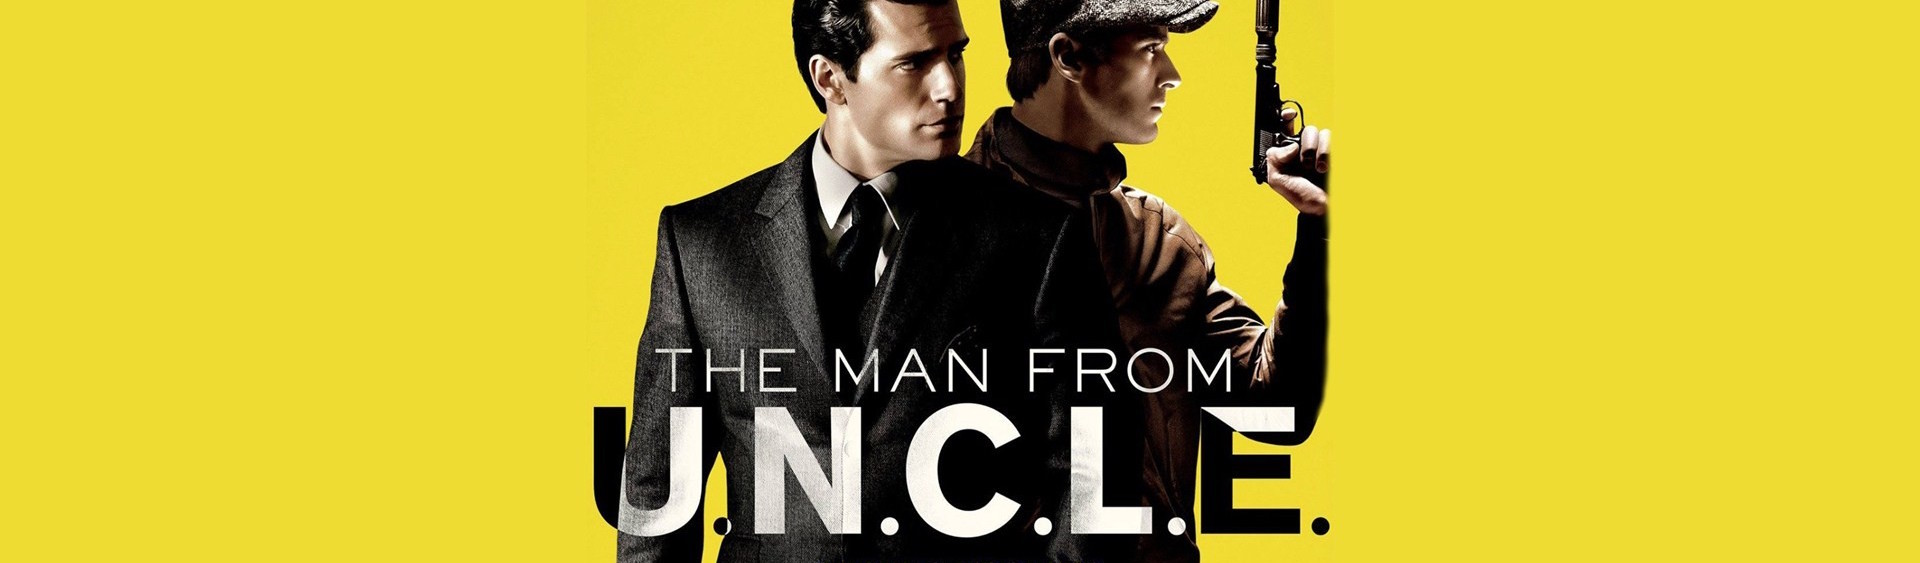 The Man From U.N.C.L.E Recension GGG+ (inkl video)